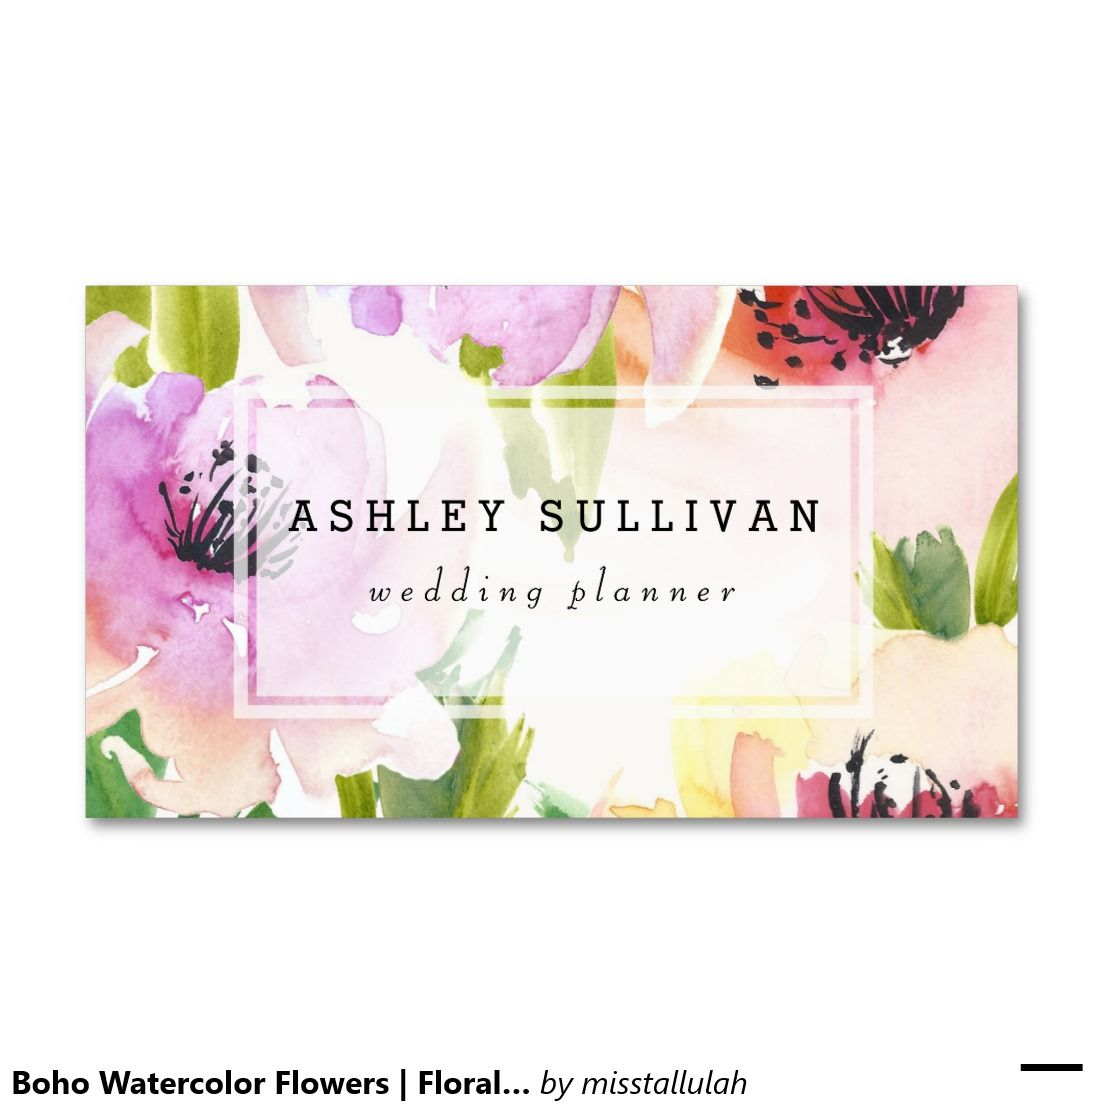 Boho Watercolor Flowers | Floral Business Card | Business cards ...